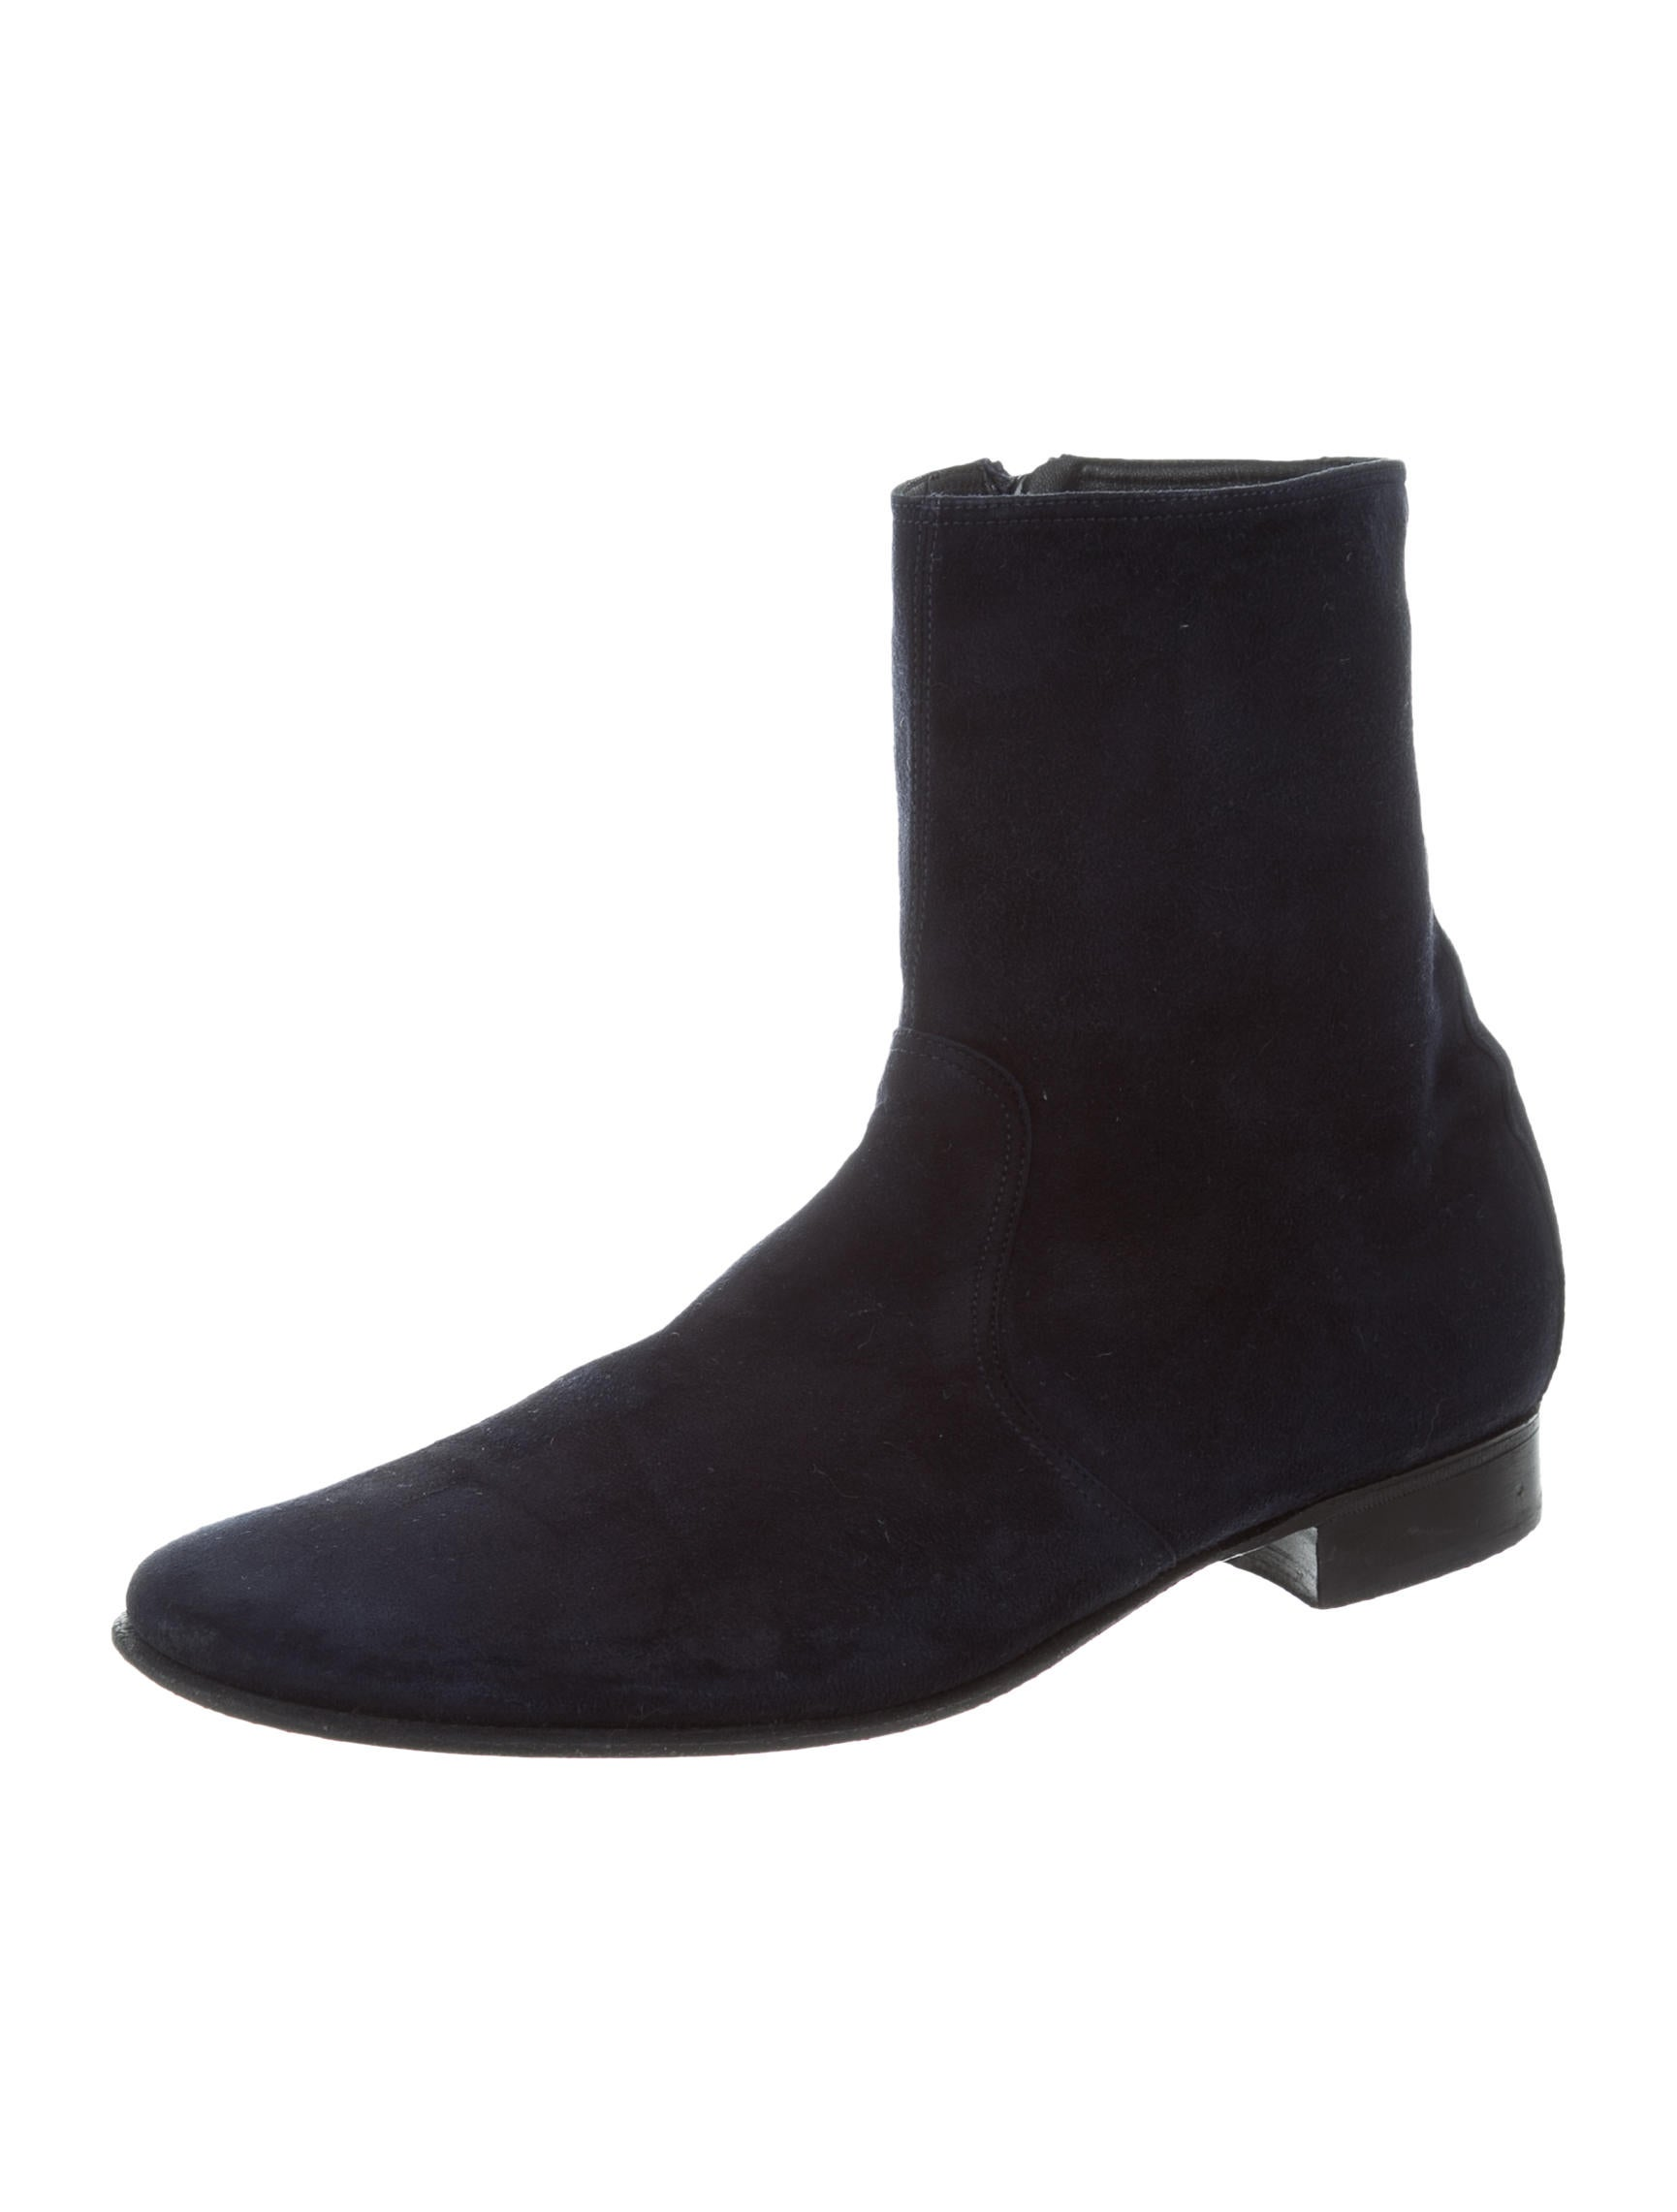 Pierre Hardy Suede Ankle Boots - Shoes